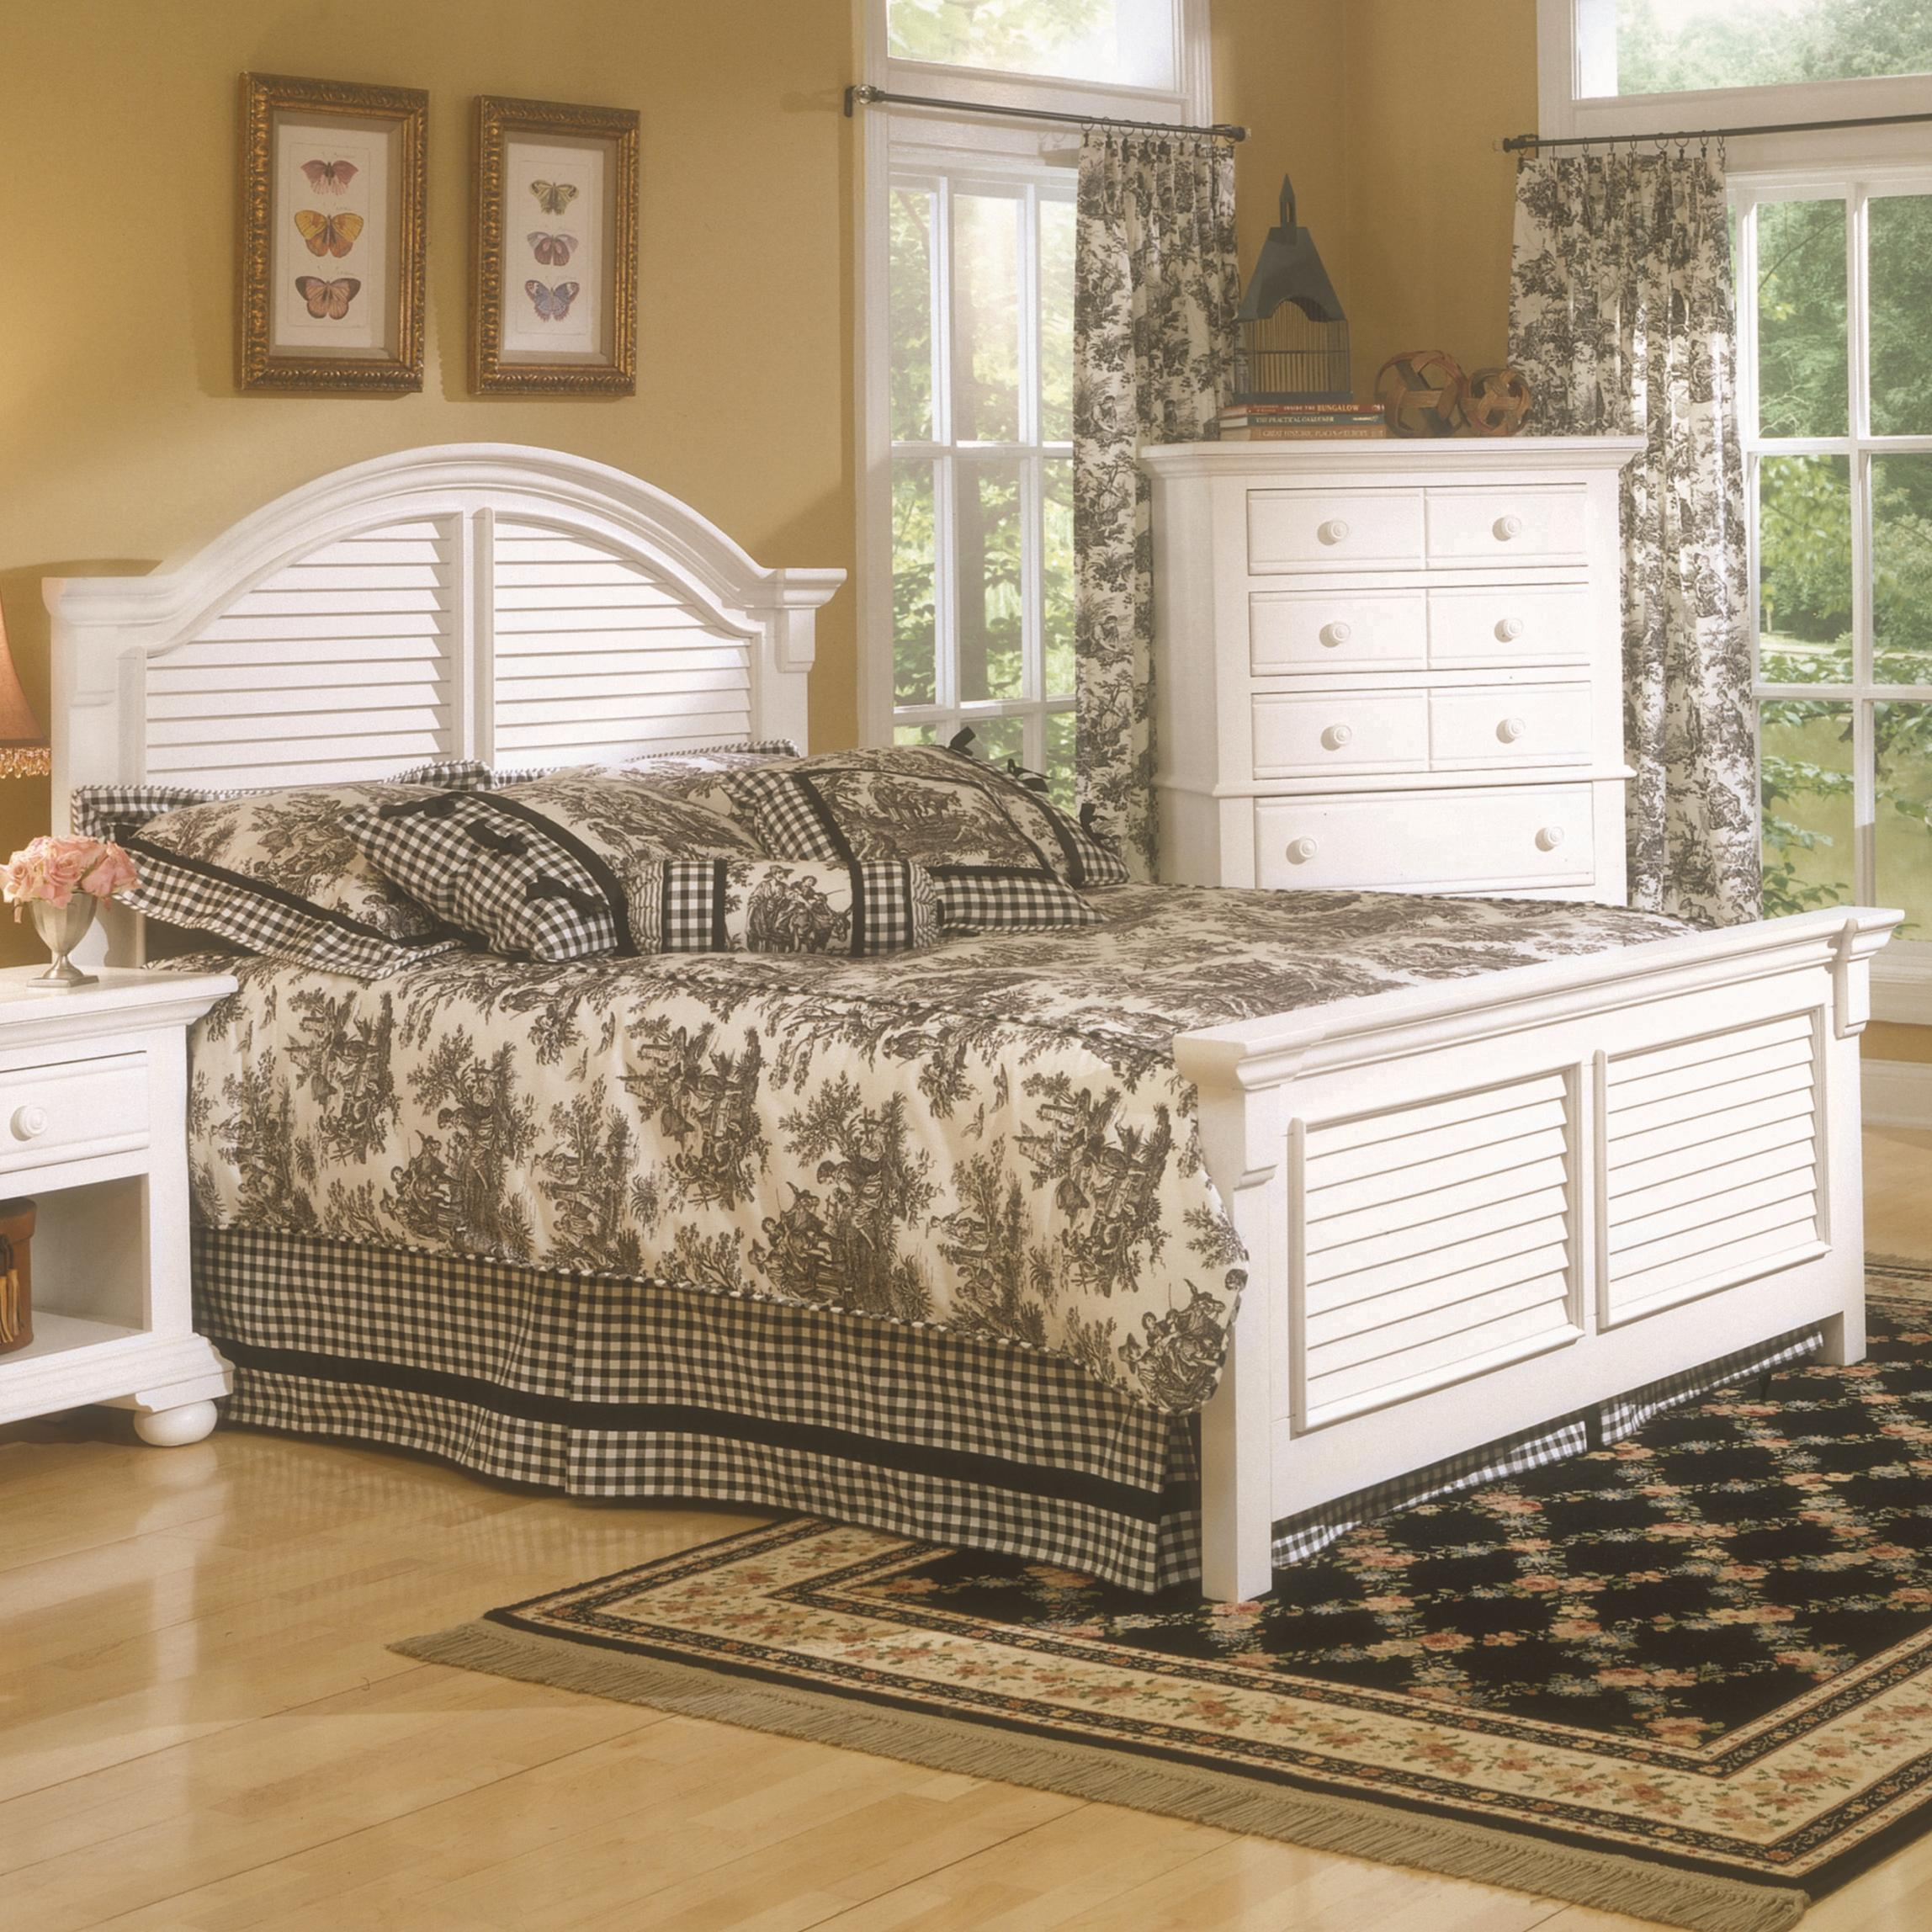 American Woodcrafters Cottage Traditions Full Panel Bed - Item Number: 6510-46PAN